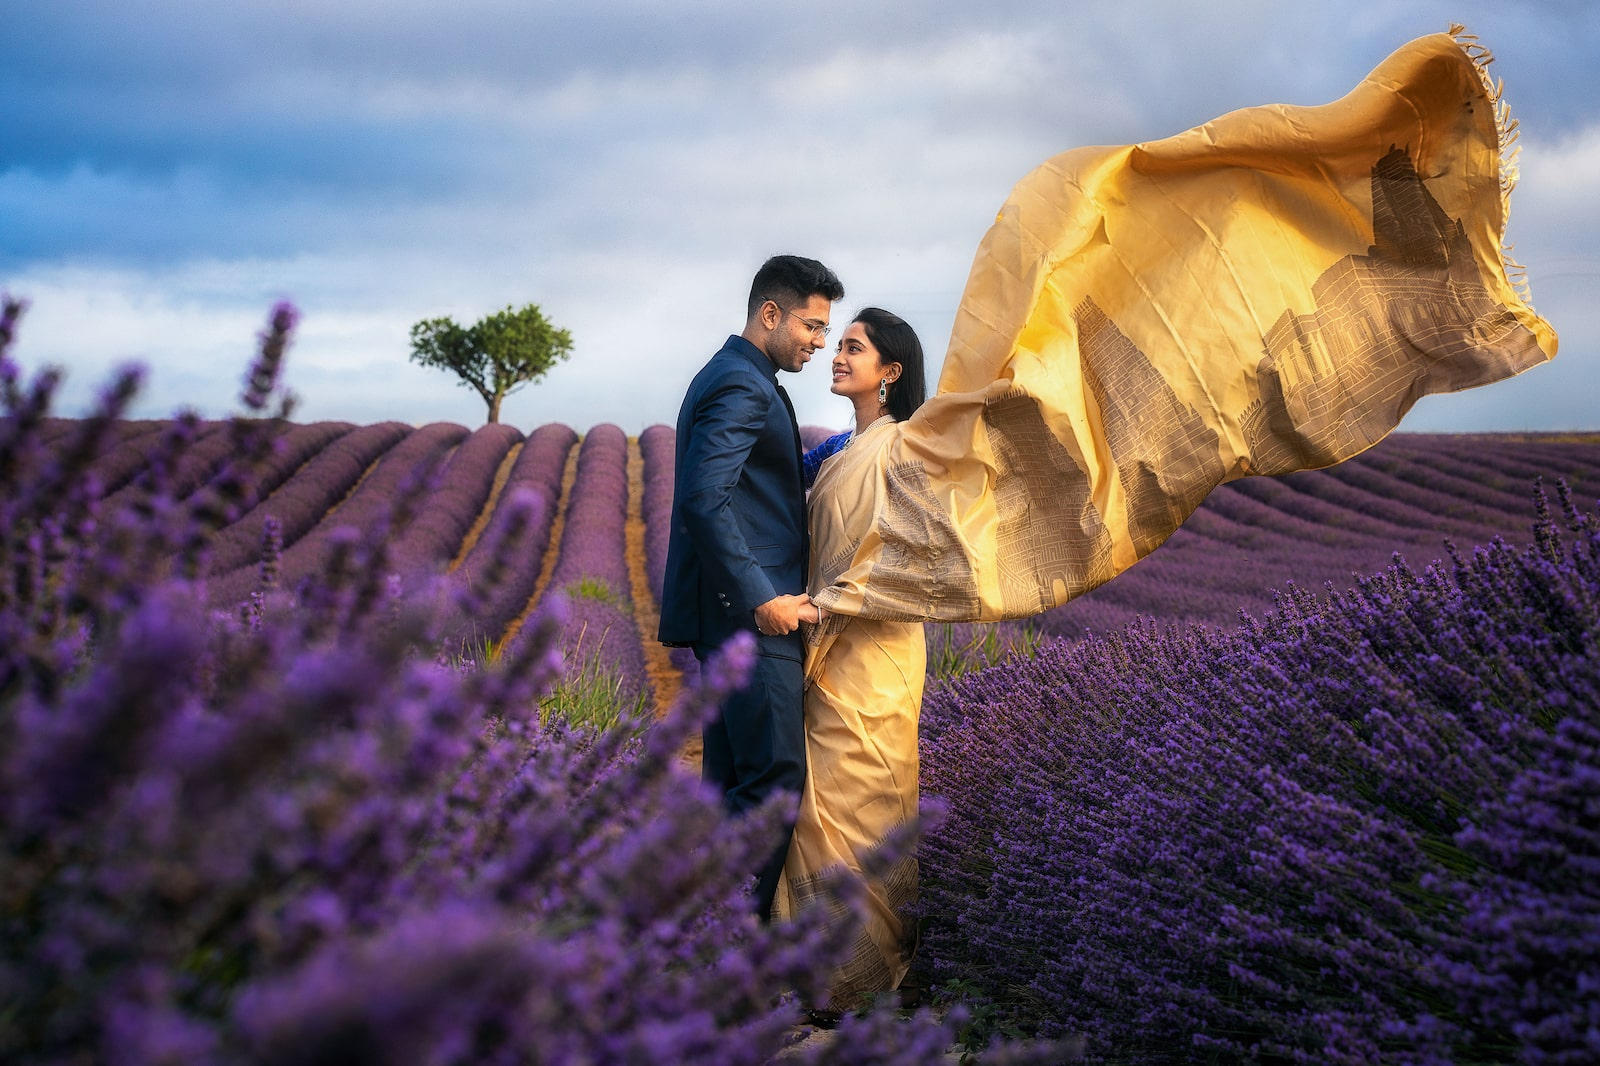 couple standing in lavender fields alpha 7RIII